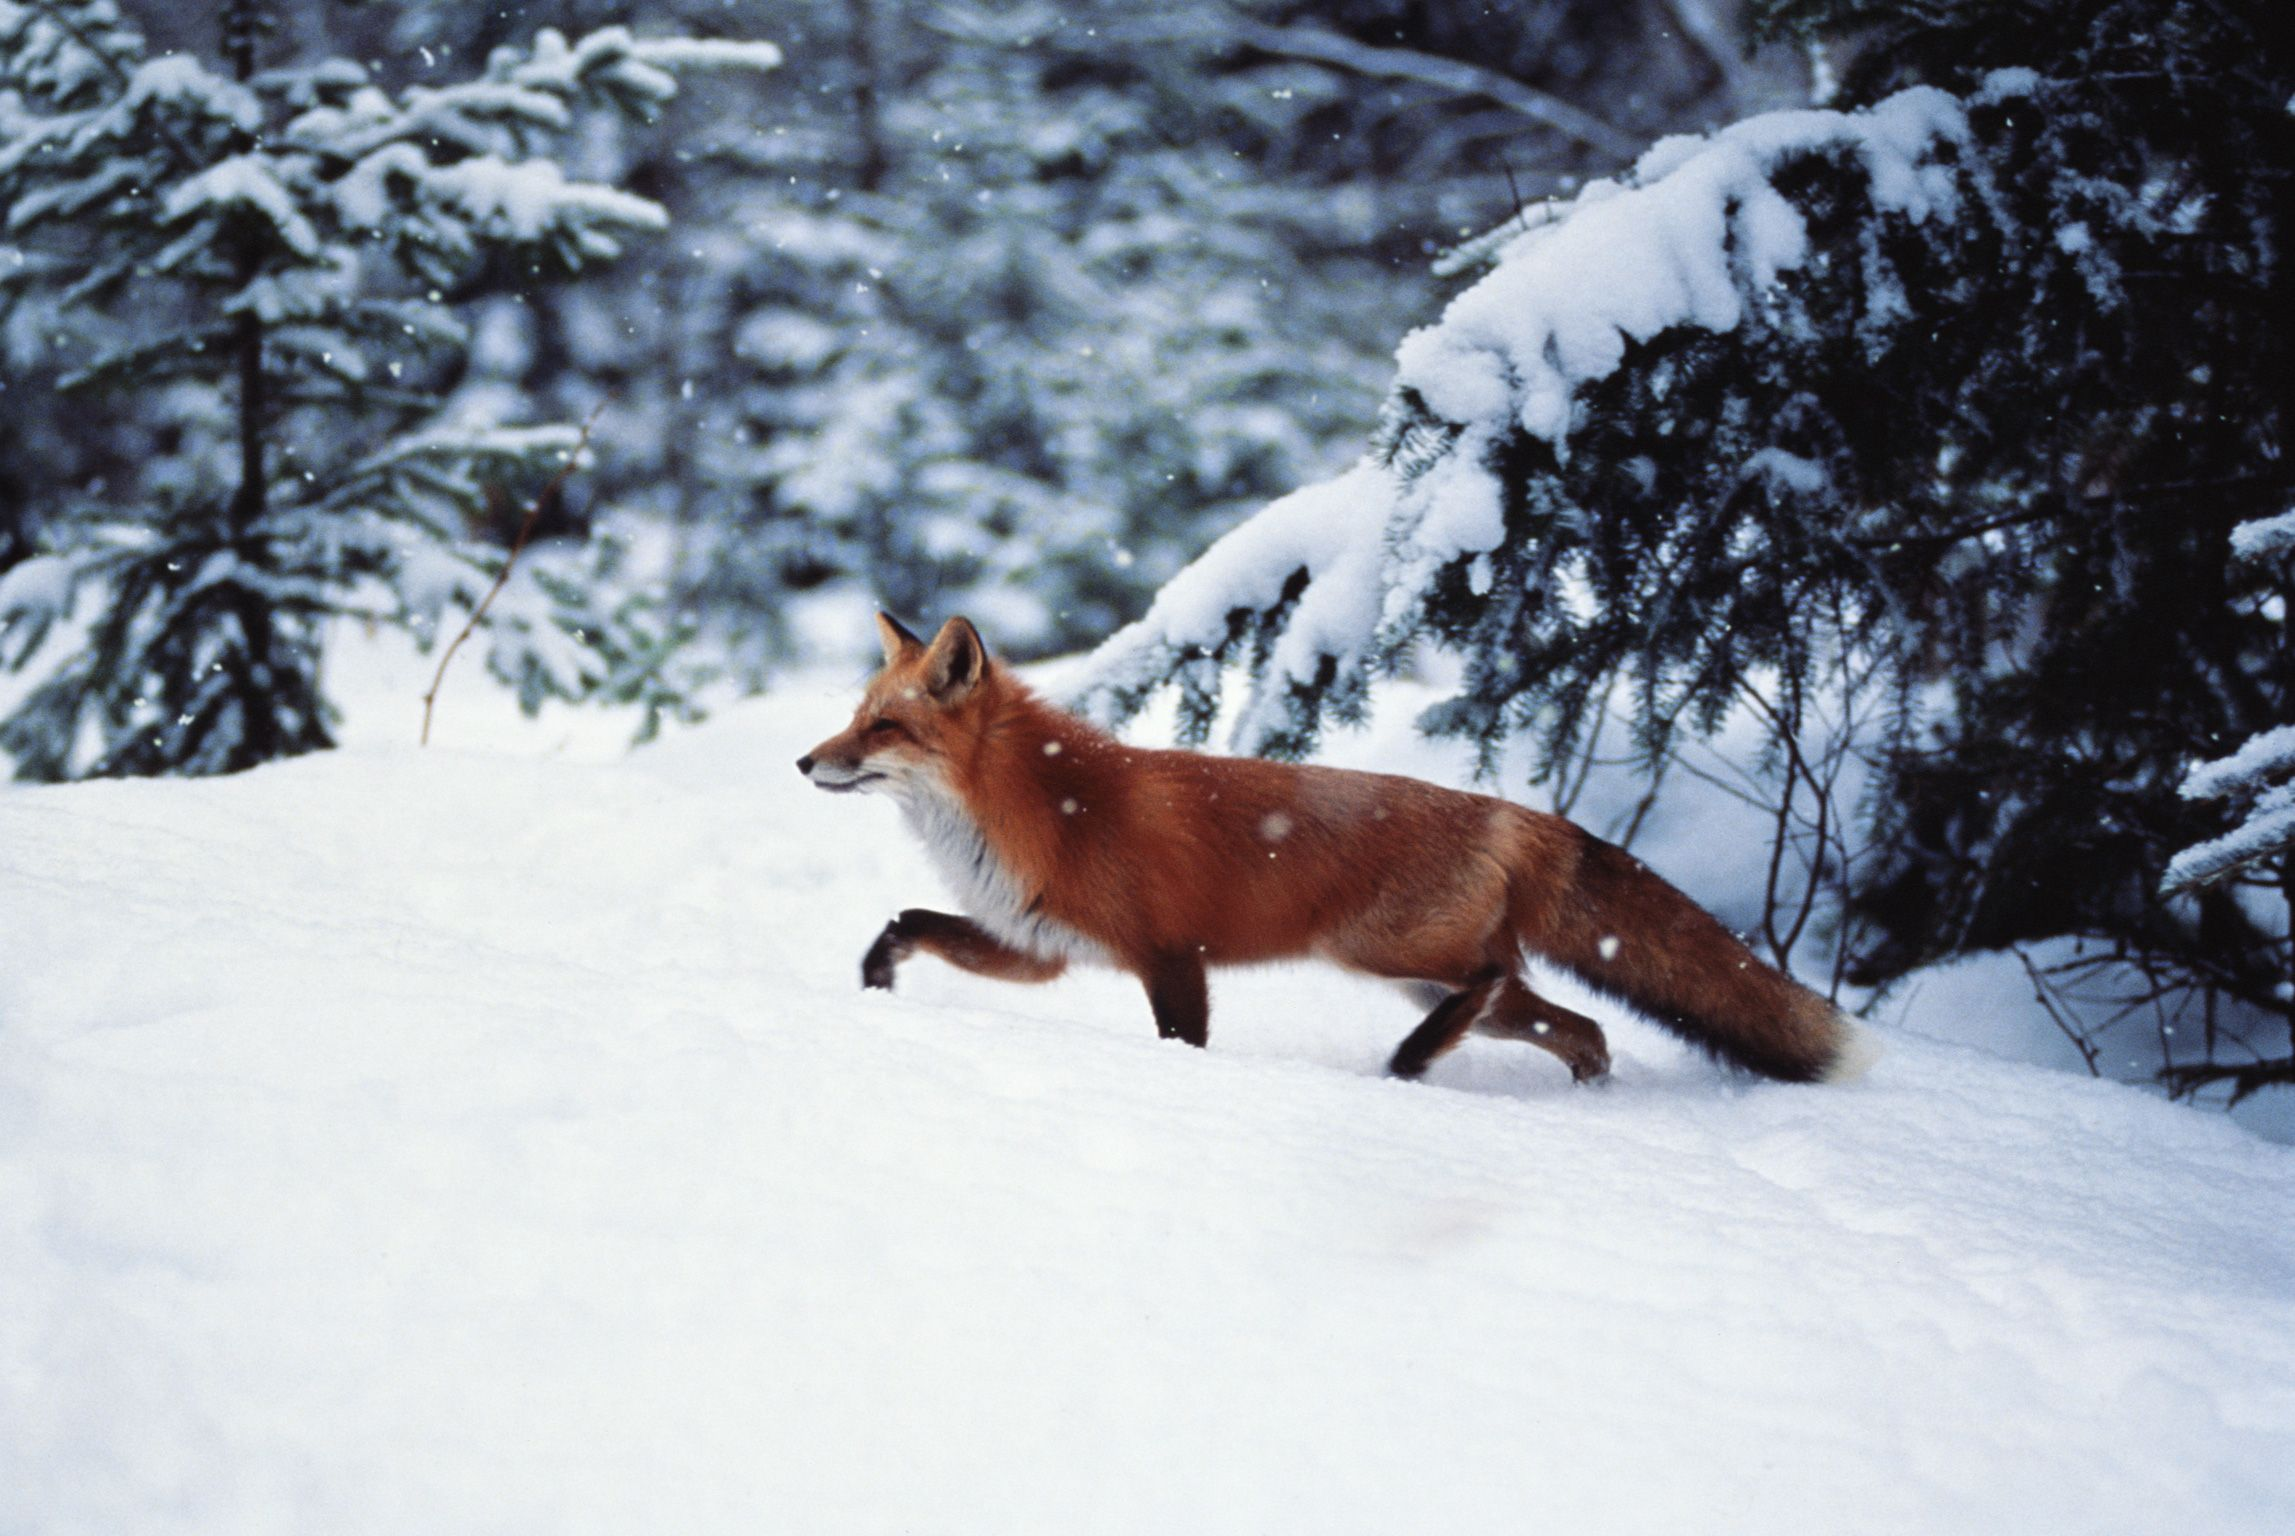 This looks exactly like the fox that crossed the road in front of me today 2-23-12! Breathtaking!